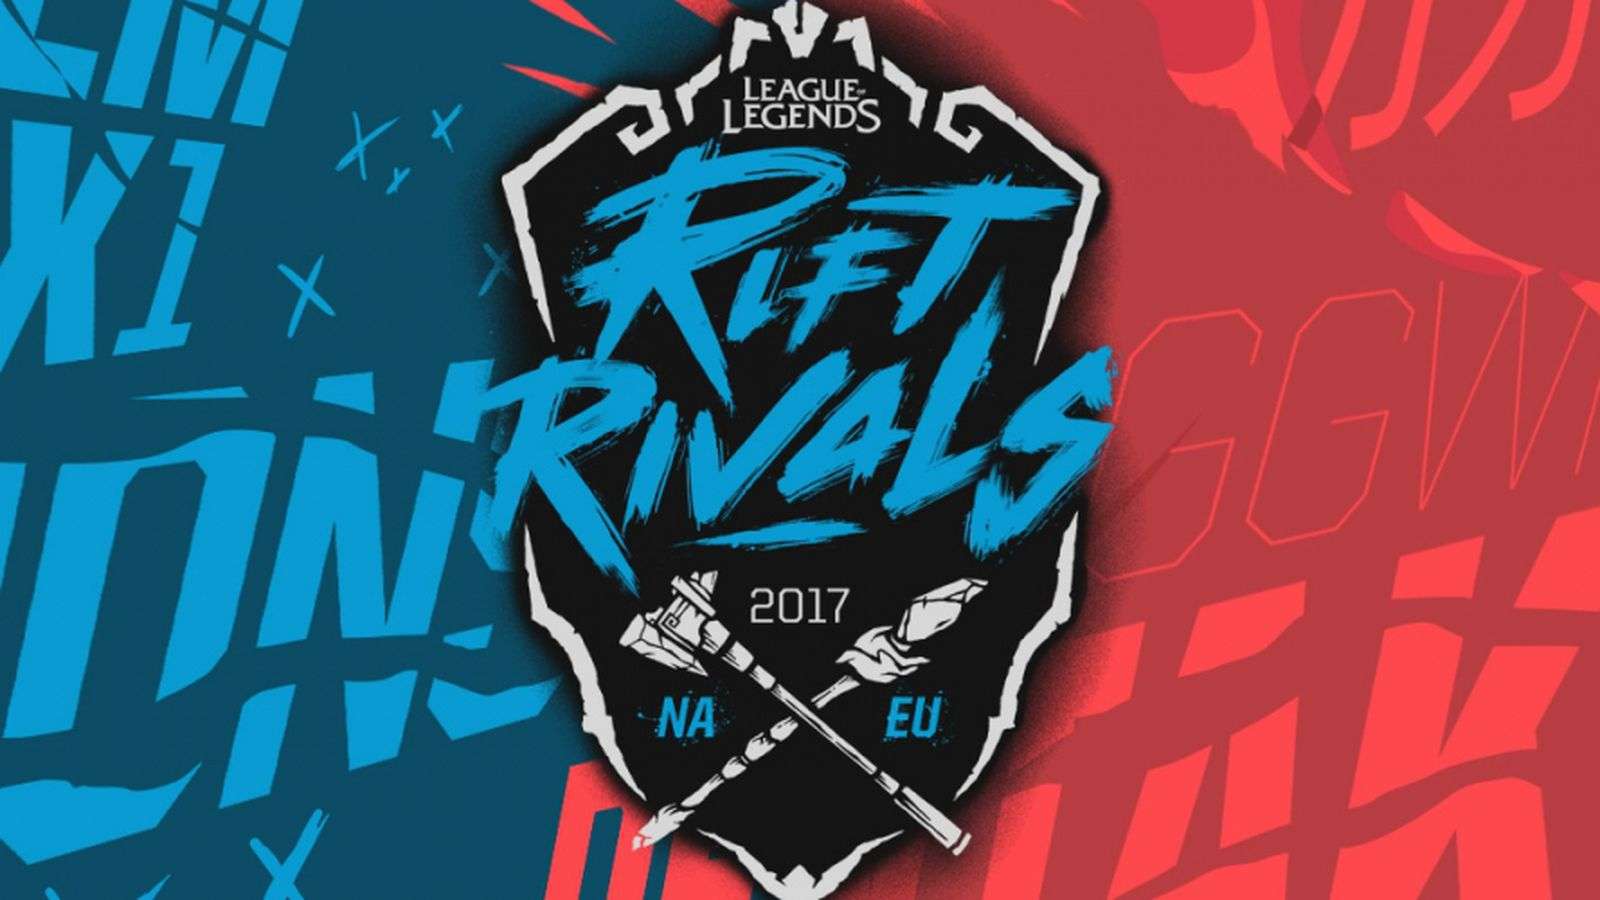 Rift Rivals NA vs EU has a new and improved format - The